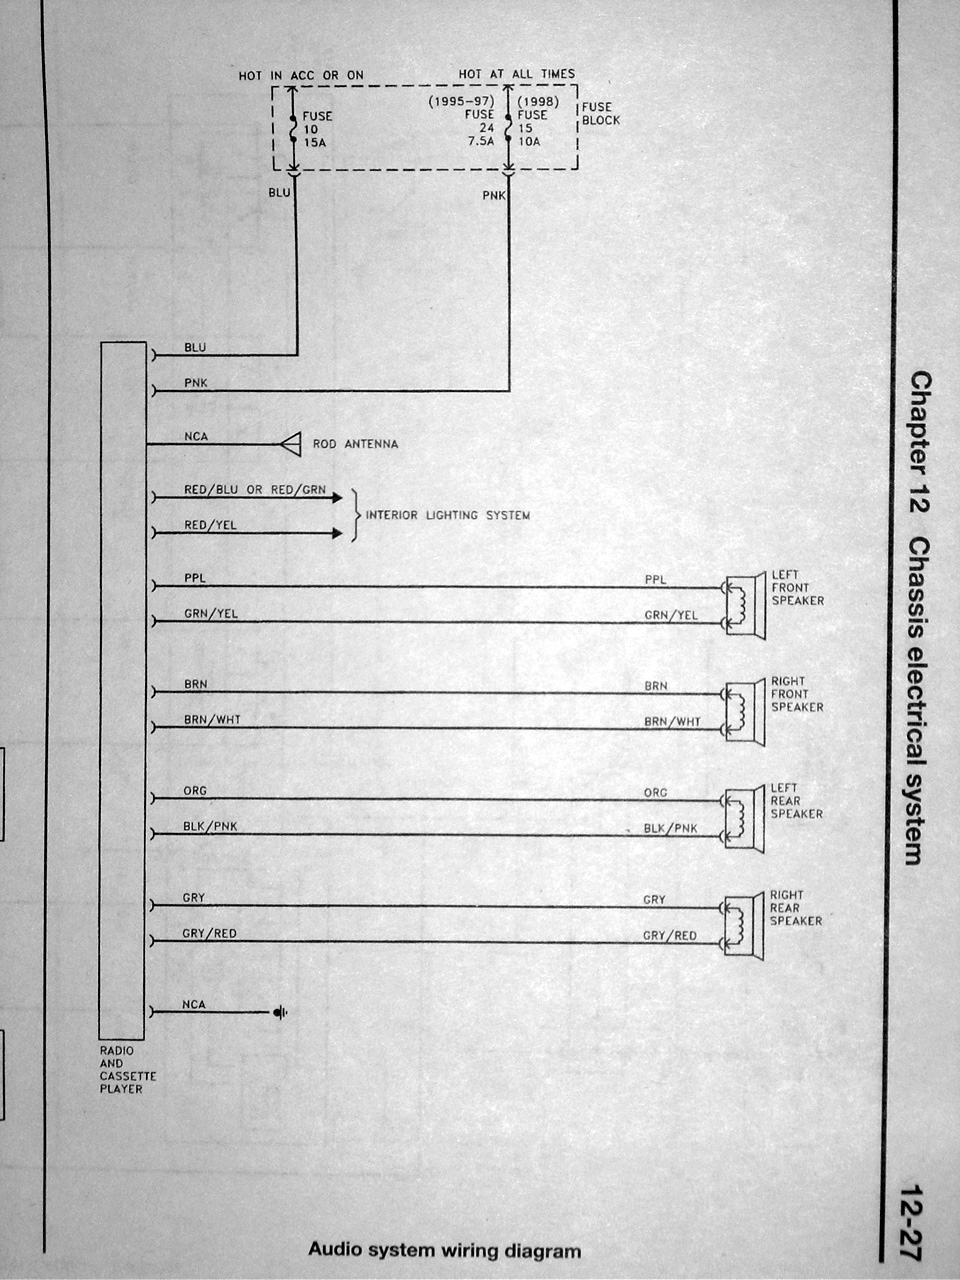 DSC01849 wiring diagram thread *useful info* nissan forum 1998 nissan frontier radio wiring diagram at fashall.co